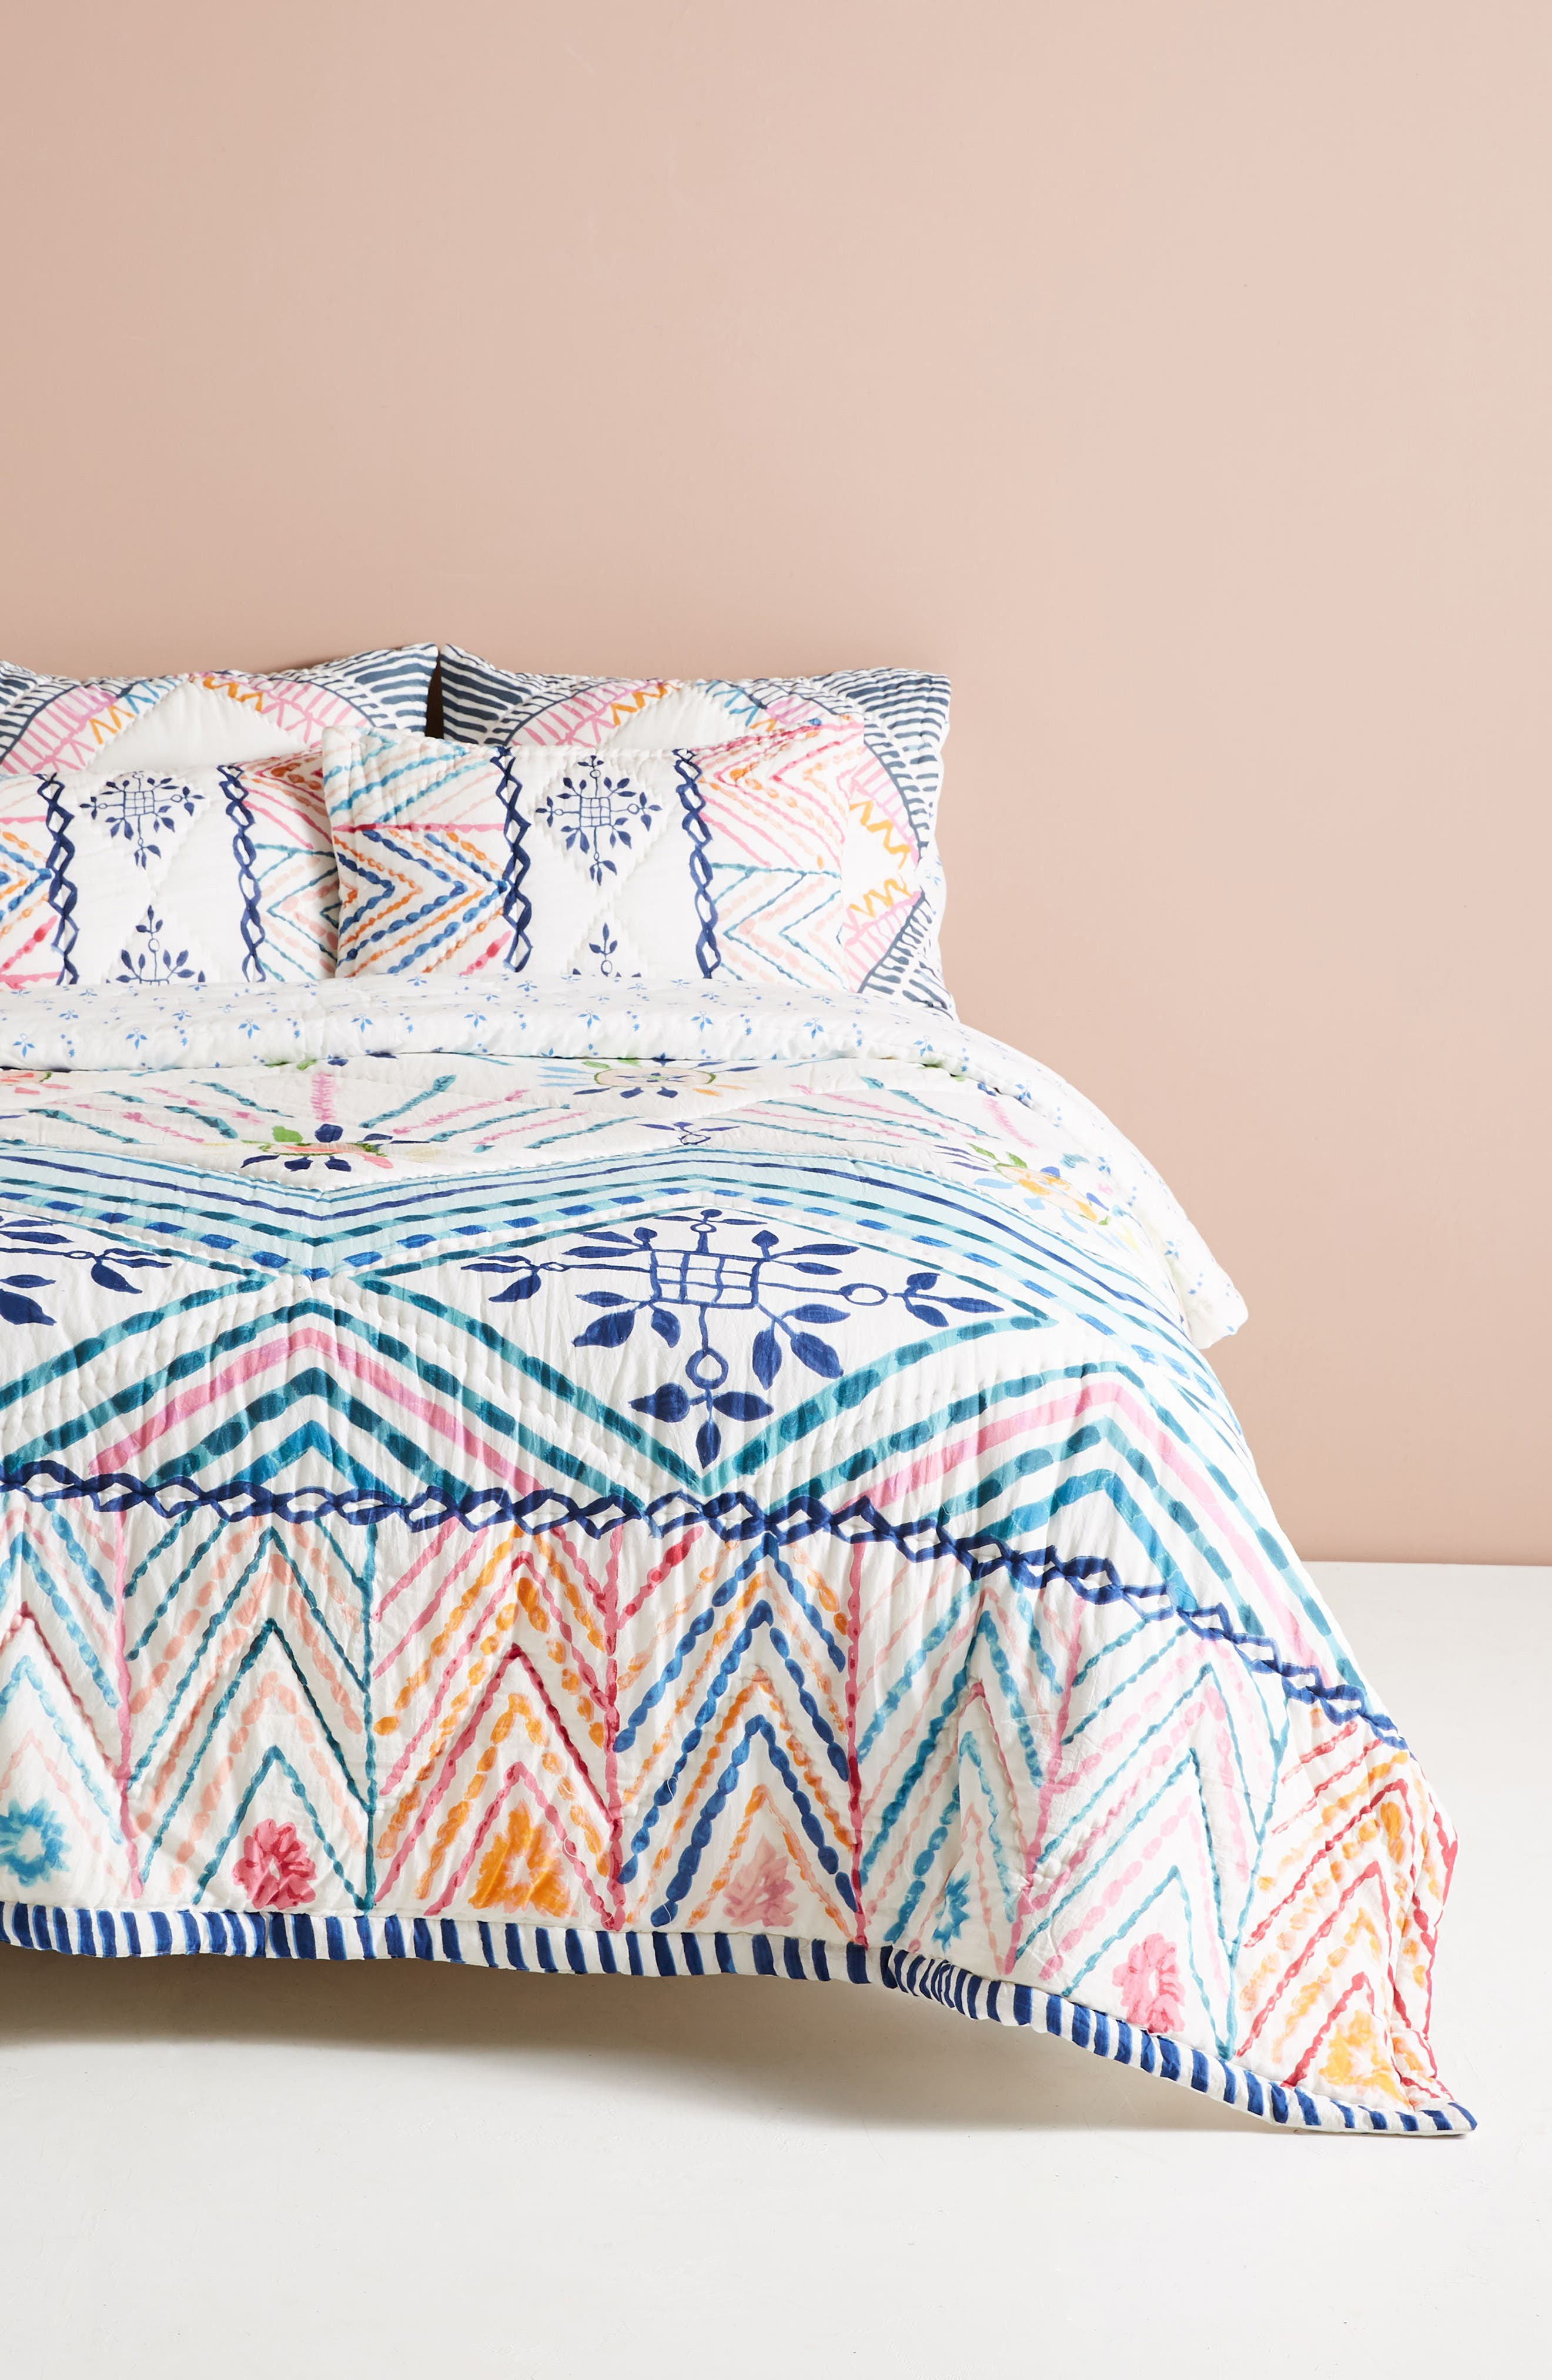 ANTHROPOLOGIE,                             Zadar Quilt,                             Main thumbnail 1, color,                             100